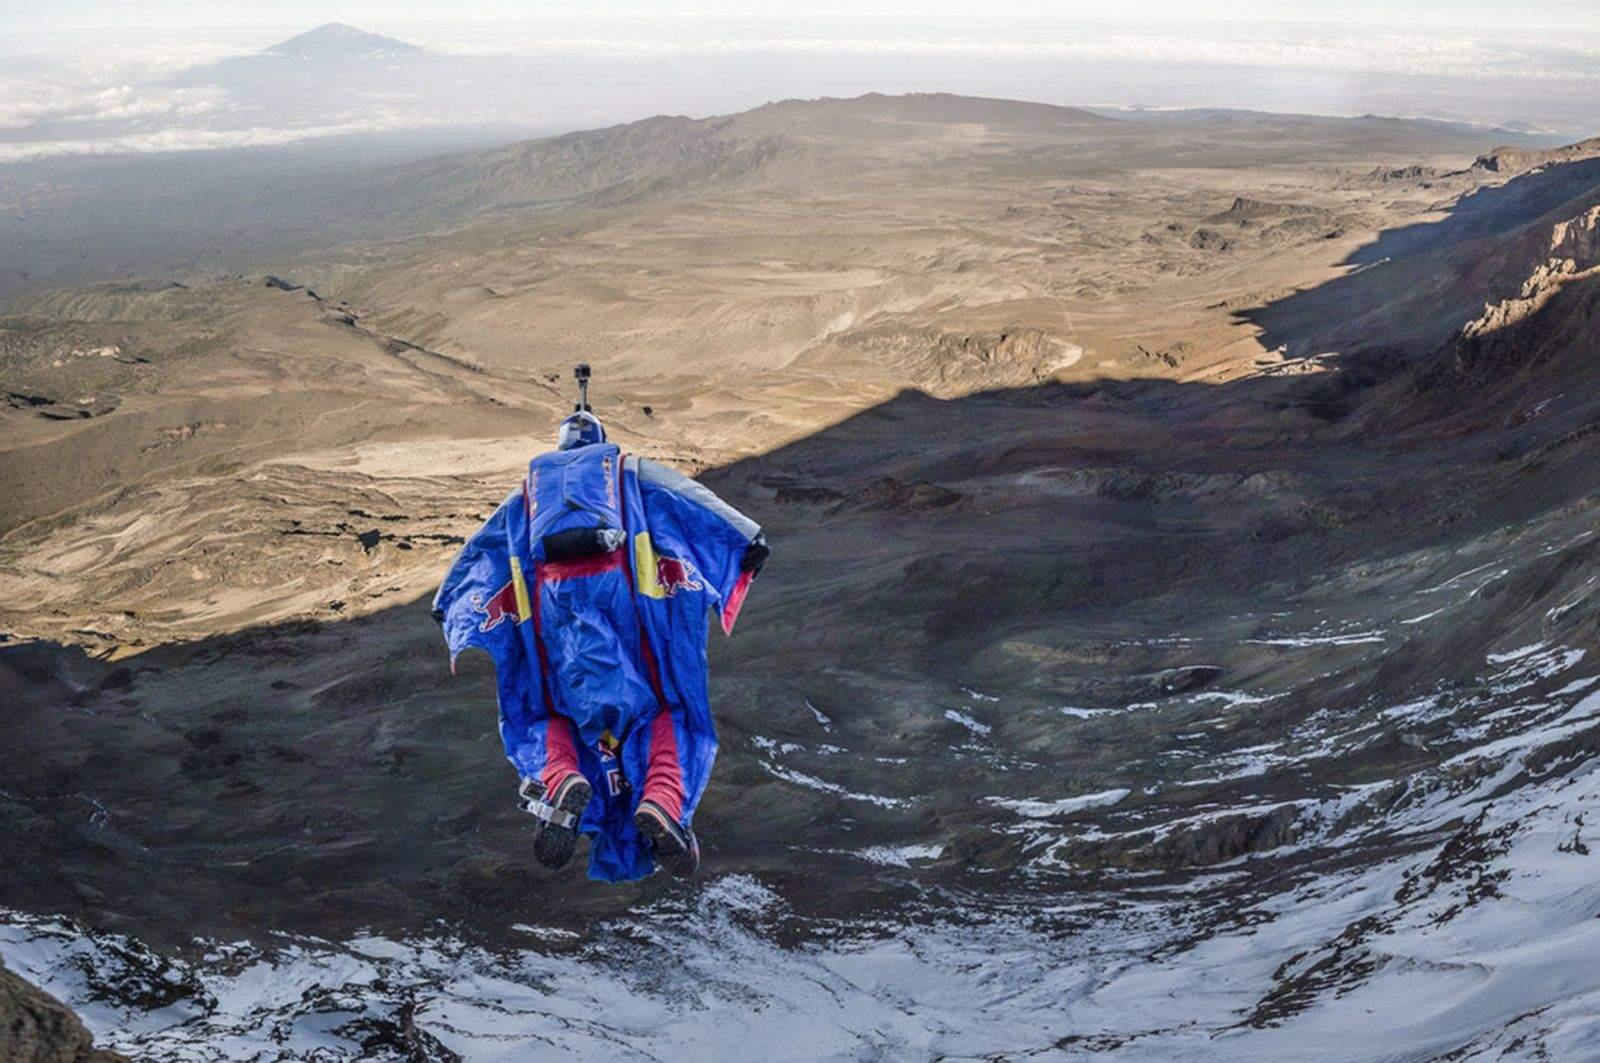 Russian BASE jumper Valery Rozov leaves his team behind after a recent wingsuit flight from Mount Kilimanjaro in Africa. Photo:  Thomas Senf / Red Bull Content Pool